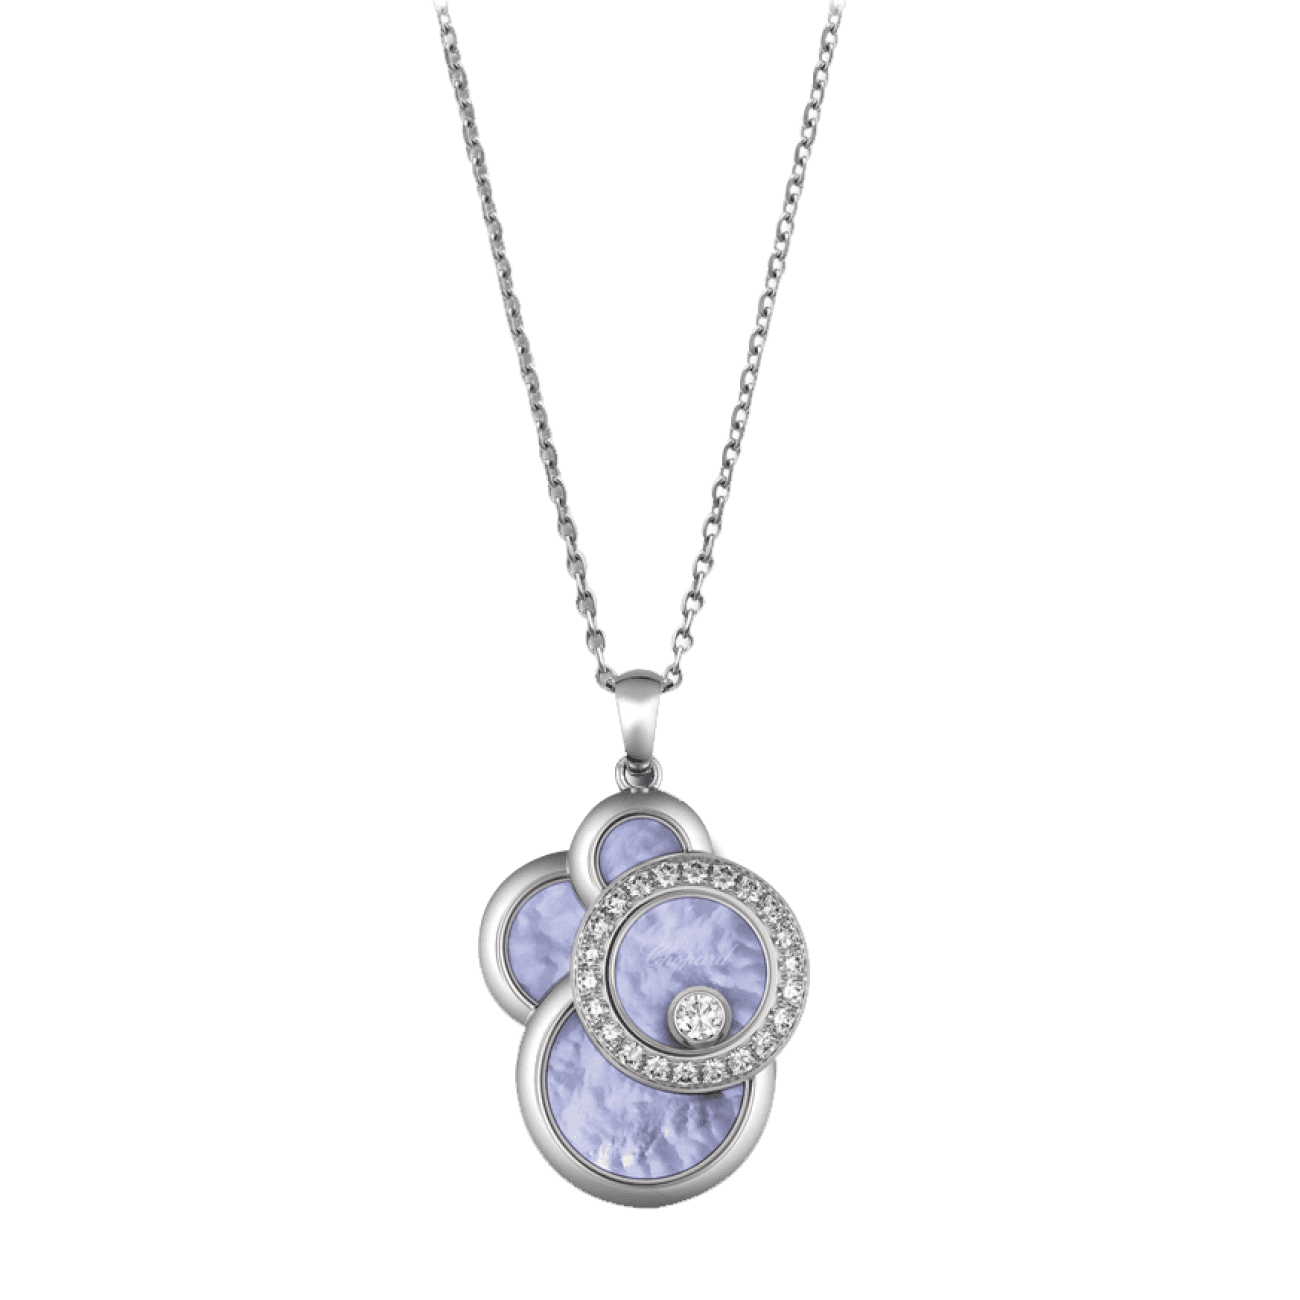 Chopard Jewelry - Happy diamond mop blue necklaces | Manfredi Jewels